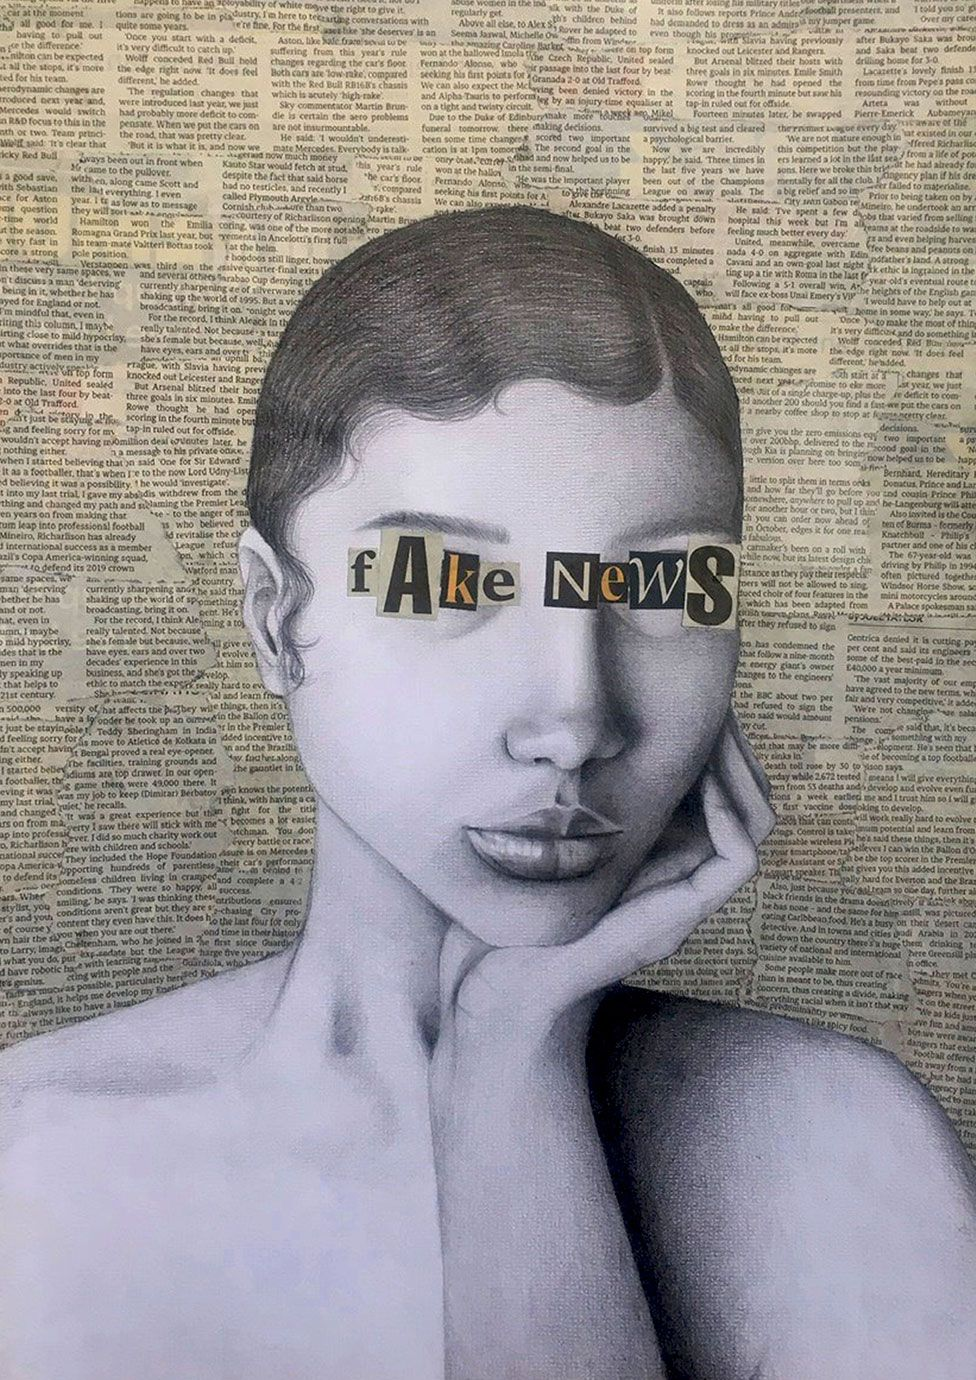 A piece of art showing a drawing of a woman with newspaper clippings around her